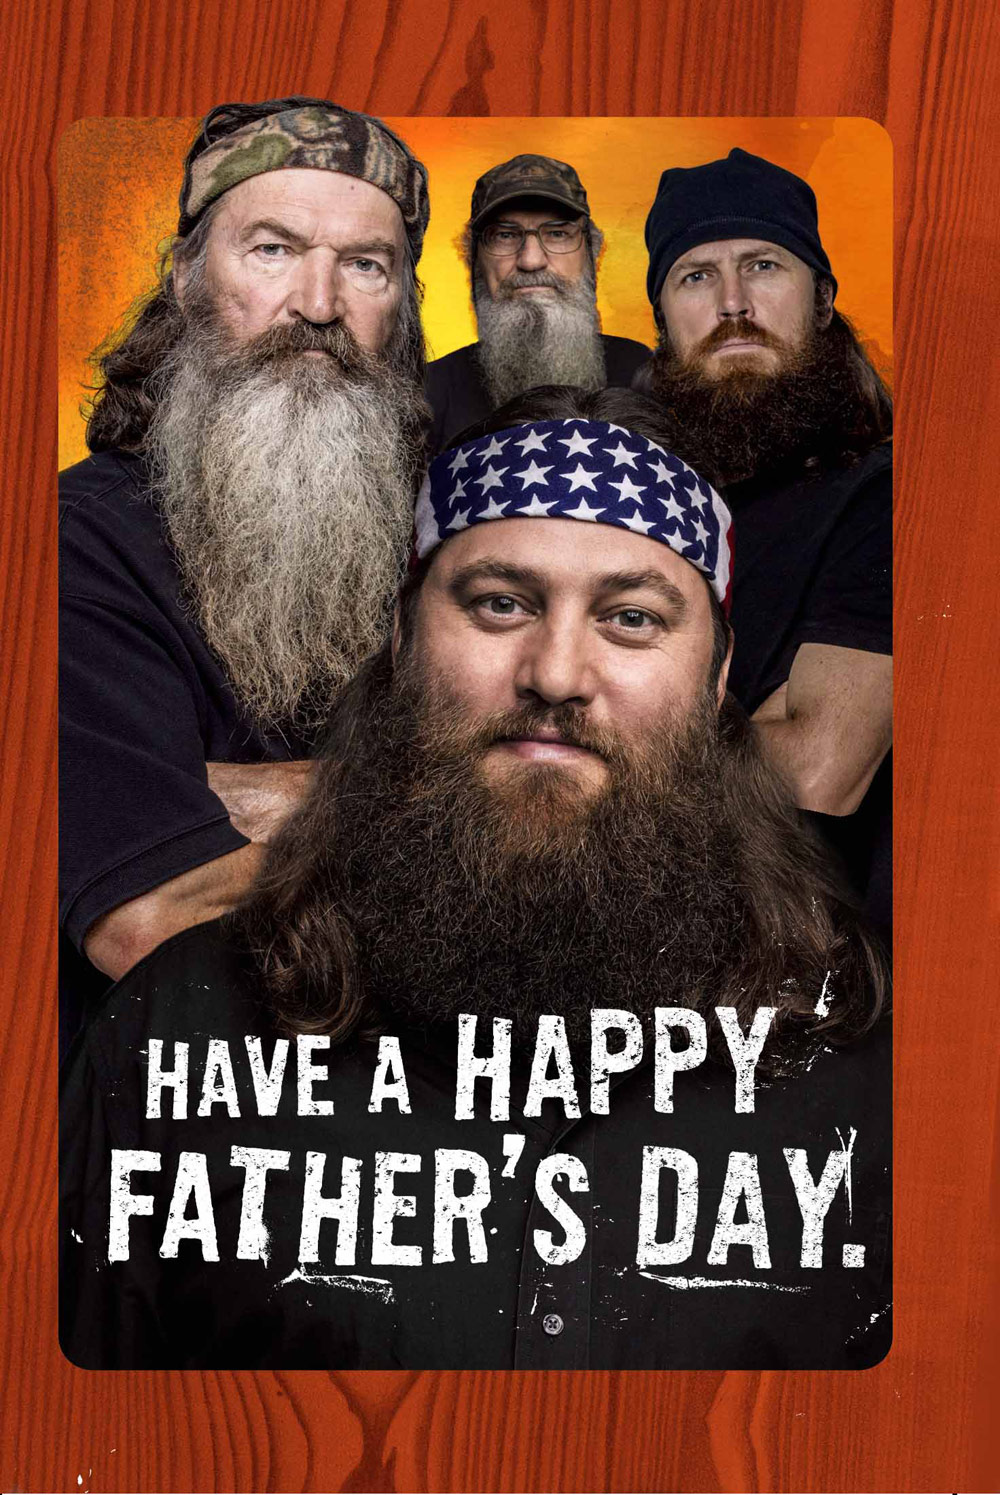 Duck Dynasty Hallmark Father's Day Card